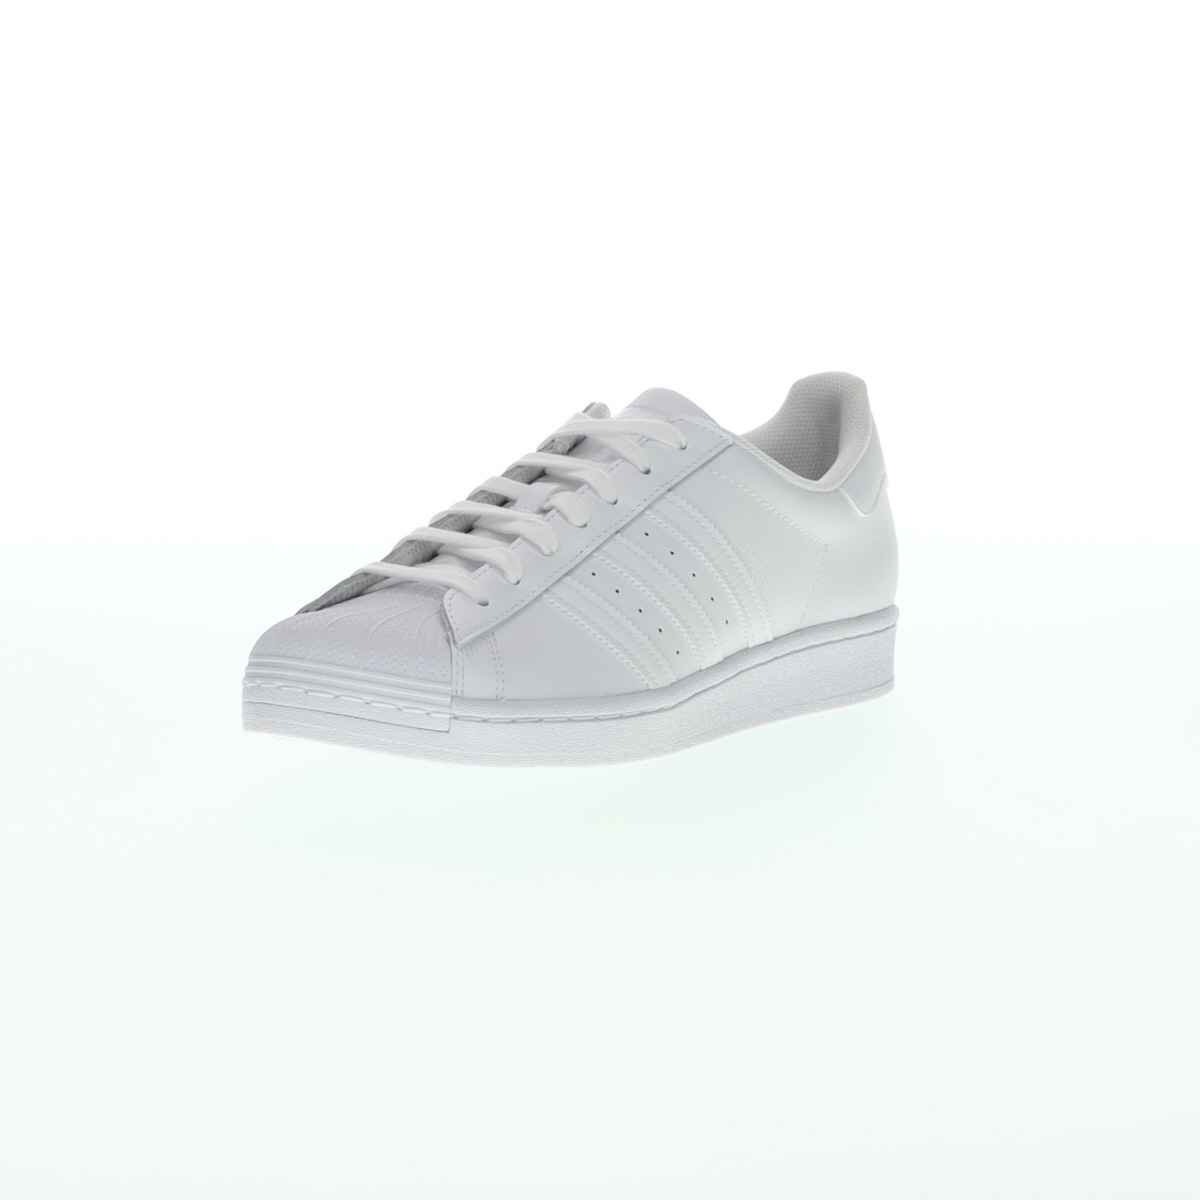 adidas beckenbauer all round shoes for women